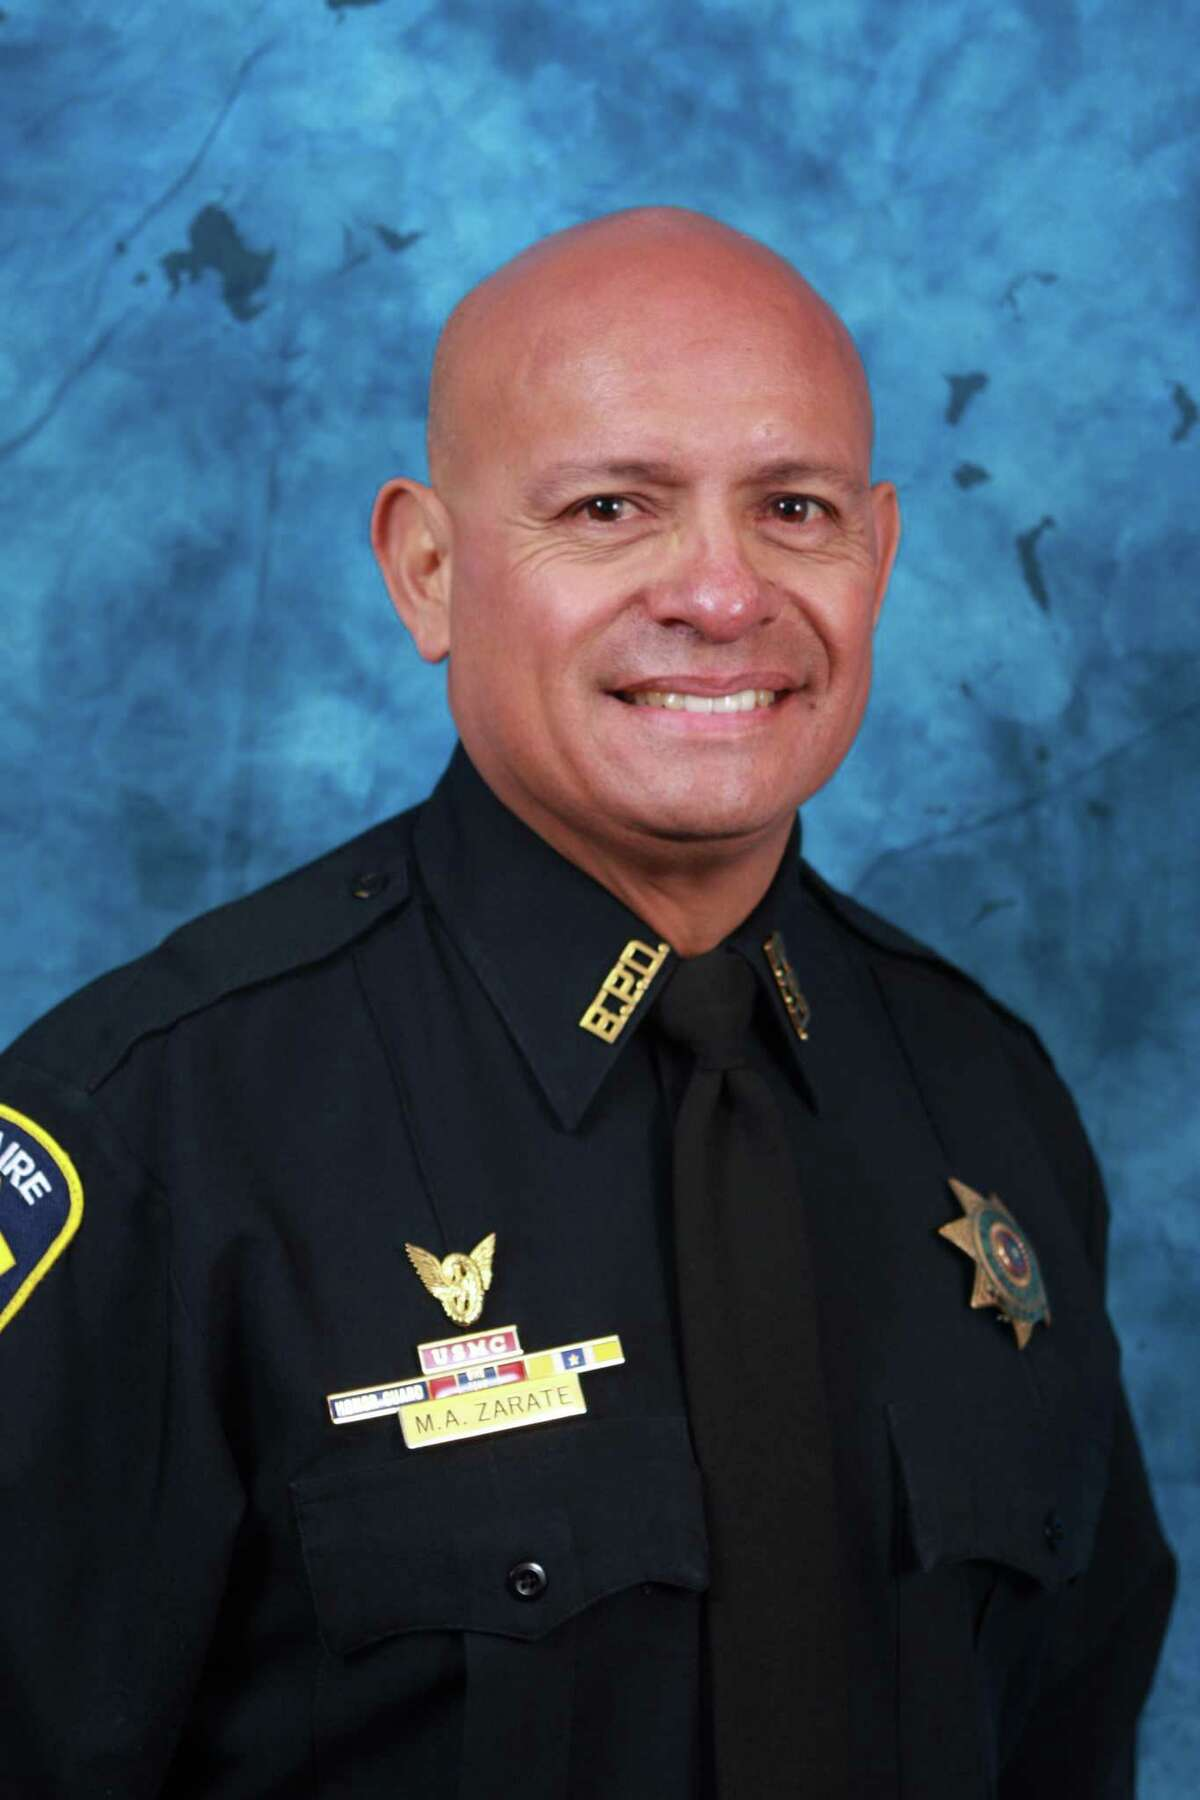 Bellaire police officer Marco Zarate Died: Tuesday, July 12, 2016 Zarate was pursuing shoplifting suspects through the city of Bellaire when he lost control of his motorcycle and crashed into a landscaping services trailer. Zarate had been with the Bellaire Police Department for seven years and was survived by his wife and three daughters.